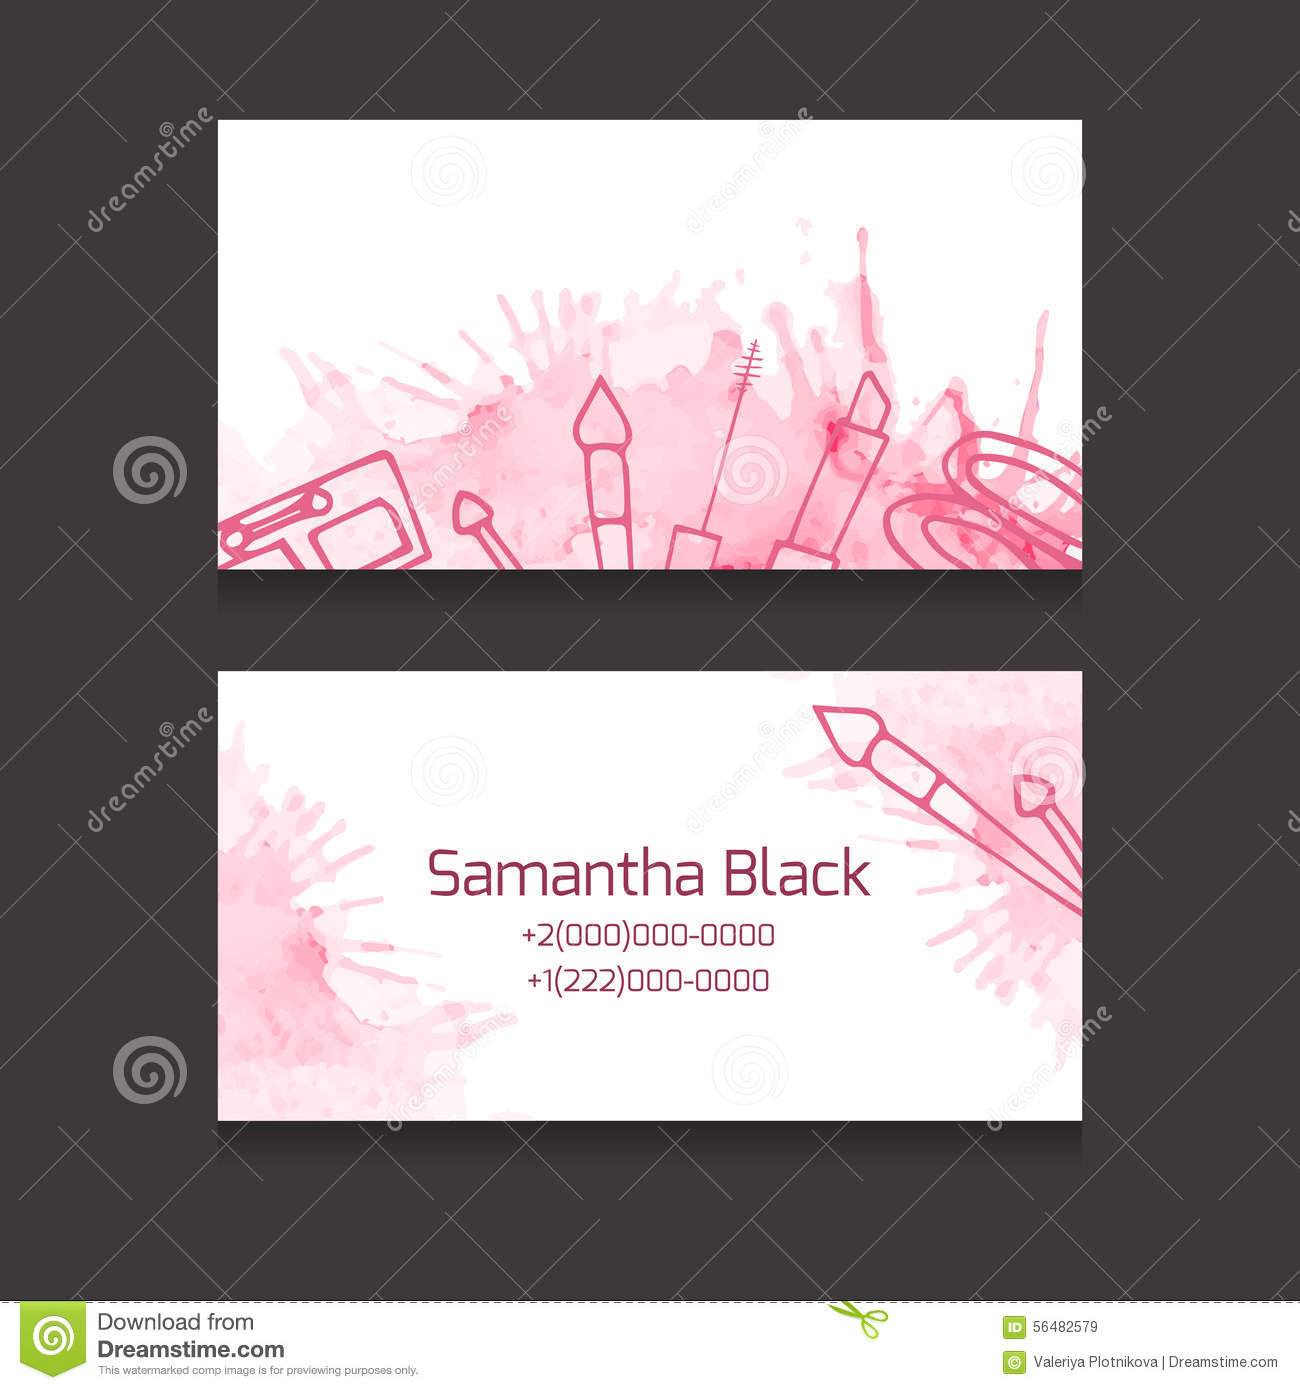 Makeup artist business card stock vector illustration of computer download makeup artist business card stock vector illustration of computer ideas 56482579 cheaphphosting Images